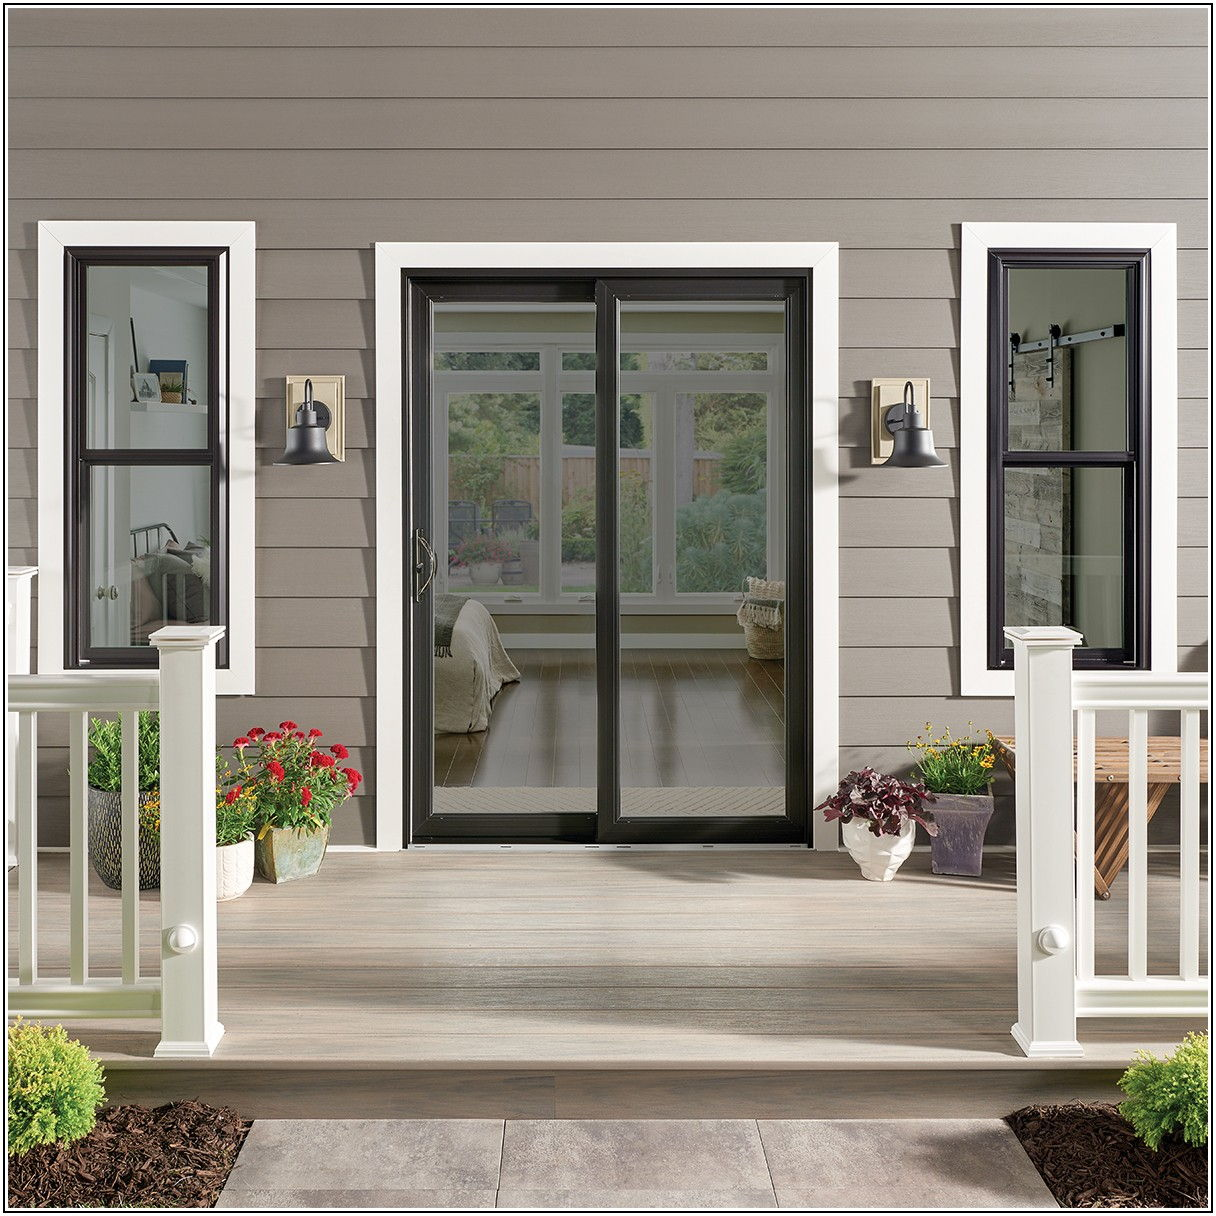 16 Sliding Patio Door